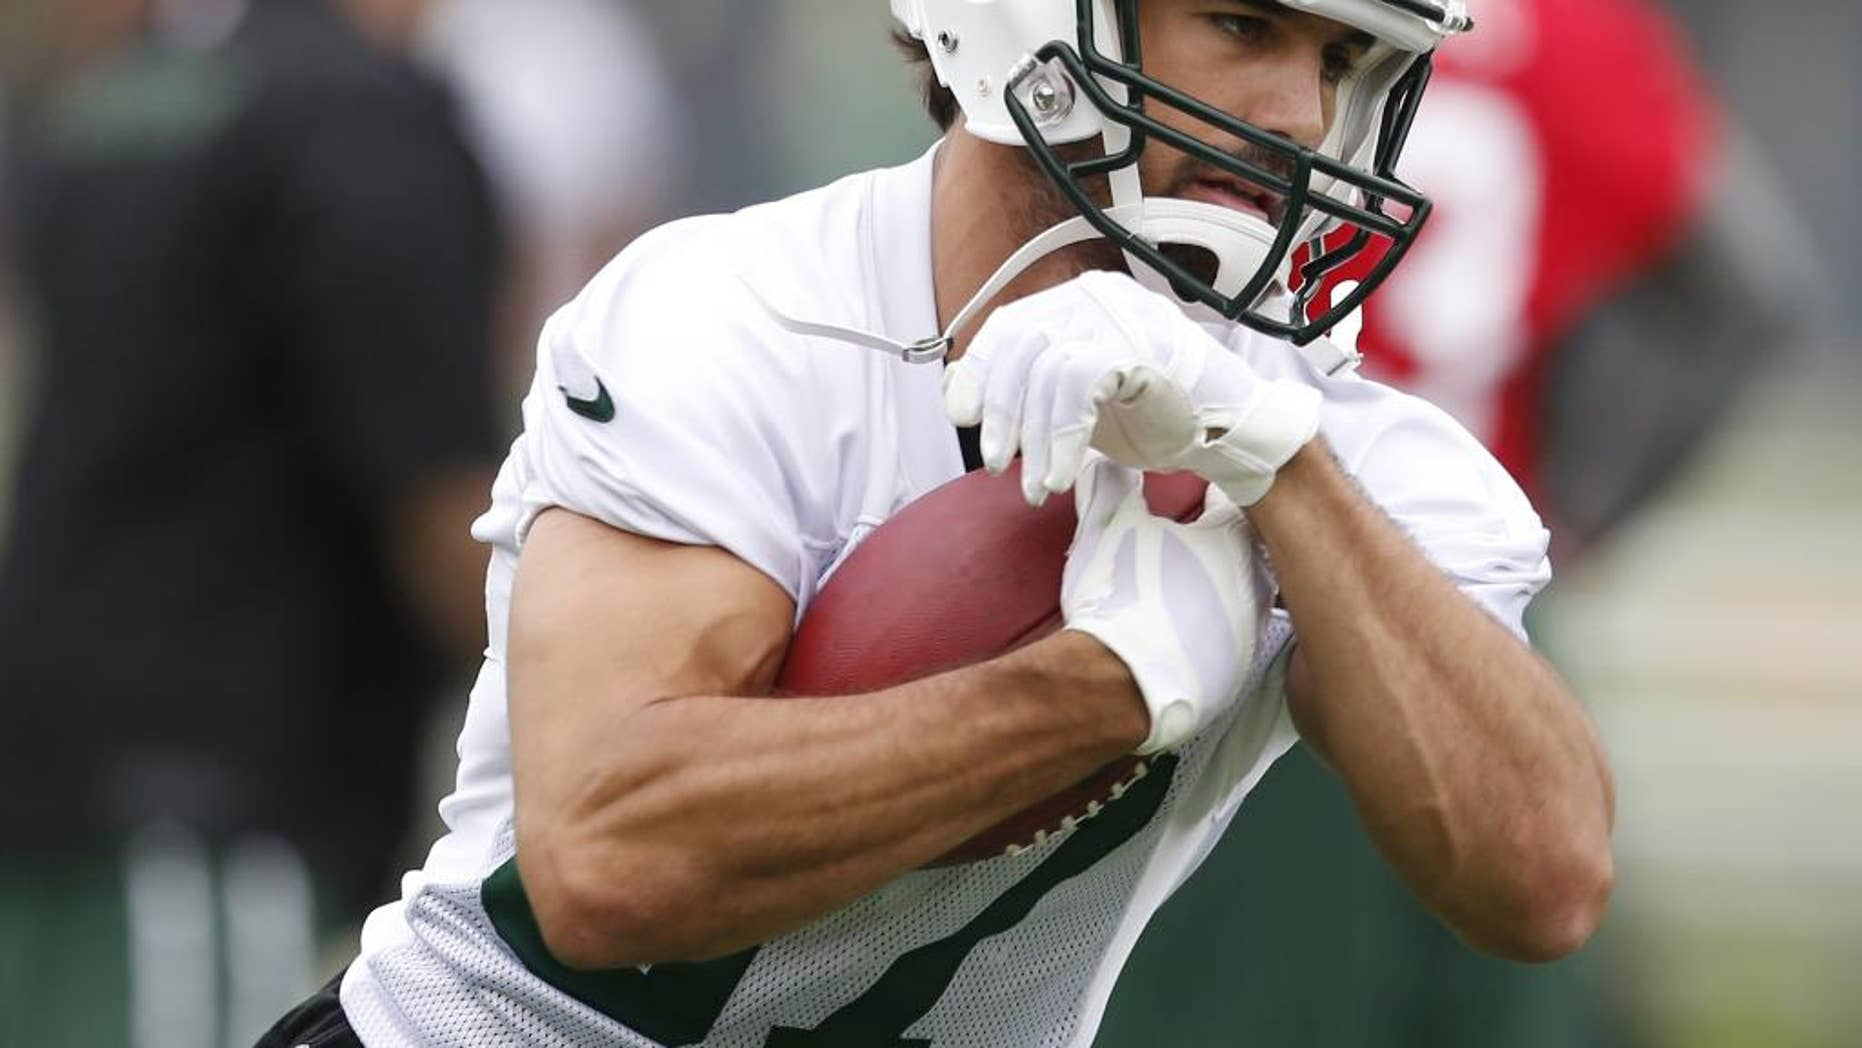 FILE - In this May 28, 2014, file photo, New York Jets wide receiver Eric Decker runs with the ball during an NFL football organized team activity in Florham Park, N.J. The Jets went into the offseason needing to upgrade their receiving corps in a big way. Now, they all need to mesh in Marty Mornhinweg's offense.  (AP Photo/Julio Cortez, File)